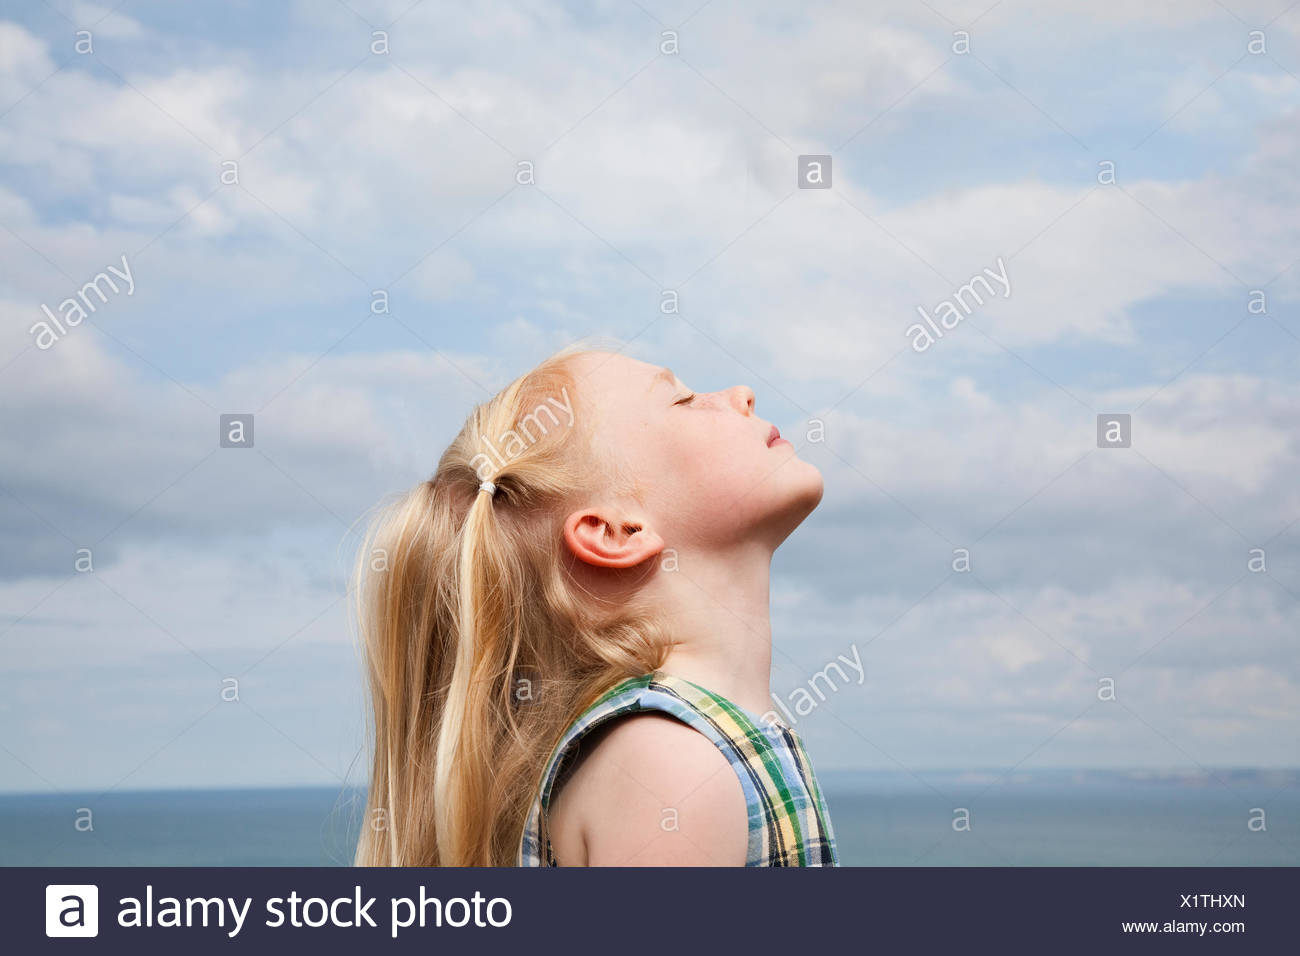 A young girl raising her face to the sun. - Stock Image